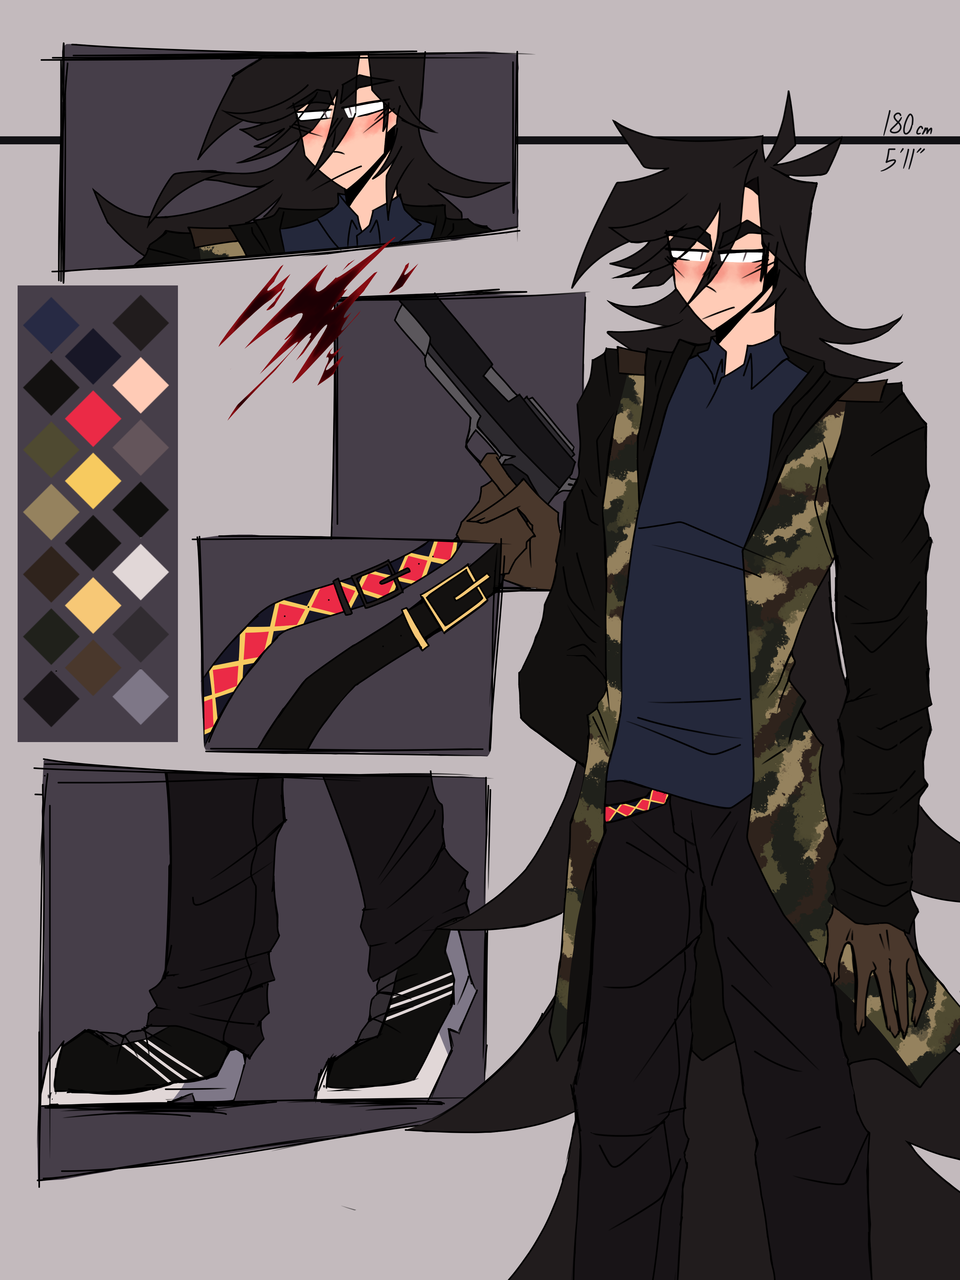 My not so cute and professionally detailed persona Illust of Hryhør1y